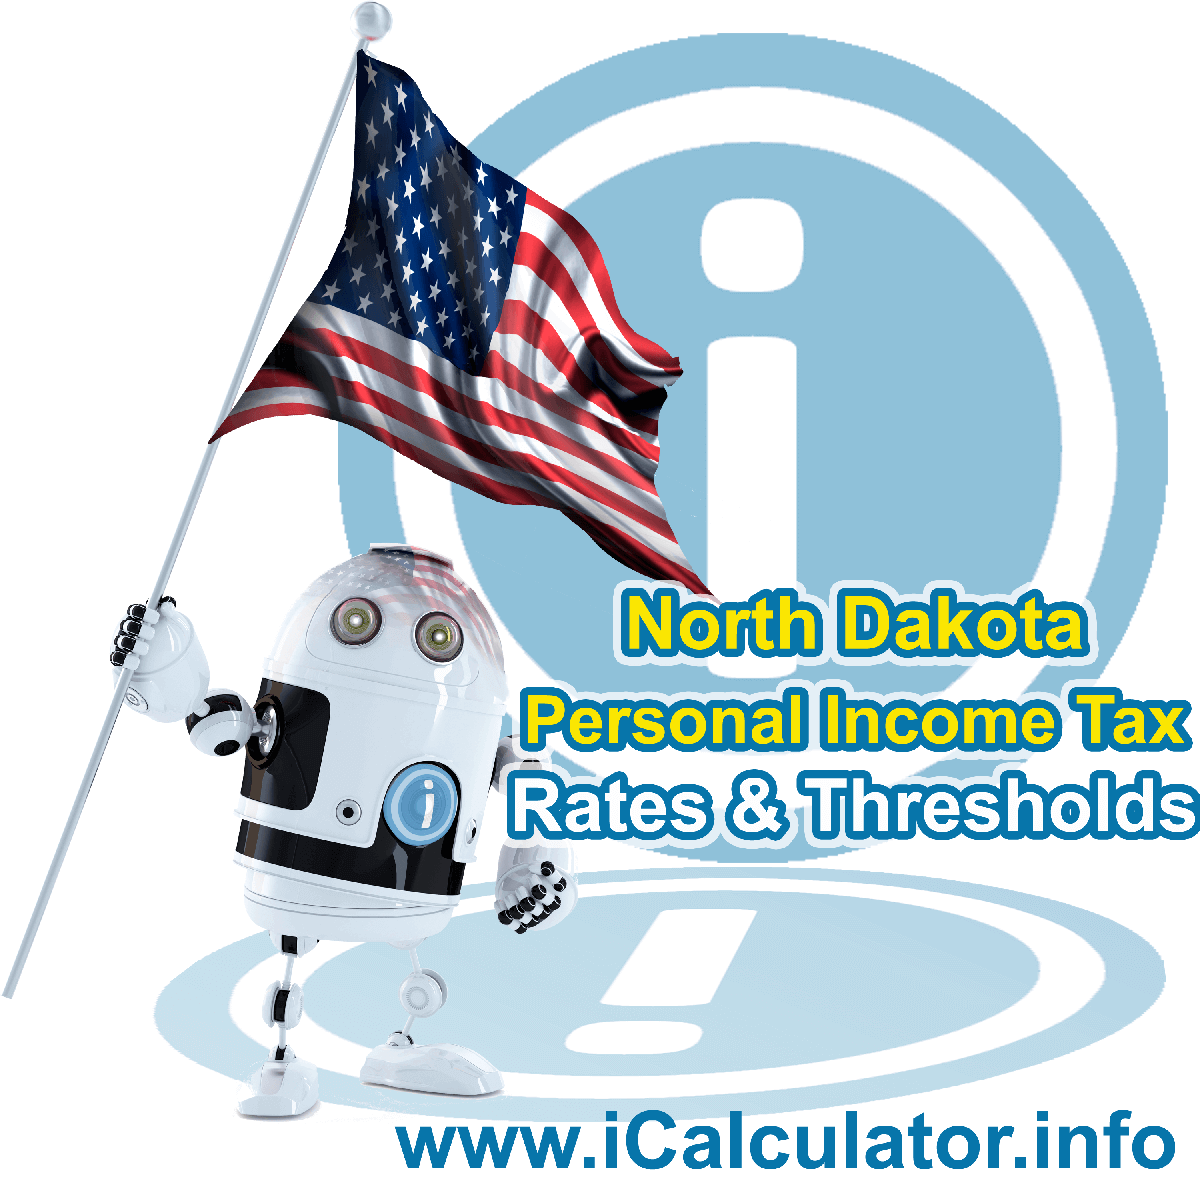 North Dakota State Tax Tables 2016. This image displays details of the North Dakota State Tax Tables for the 2016 tax return year which is provided in support of the 2016 US Tax Calculator